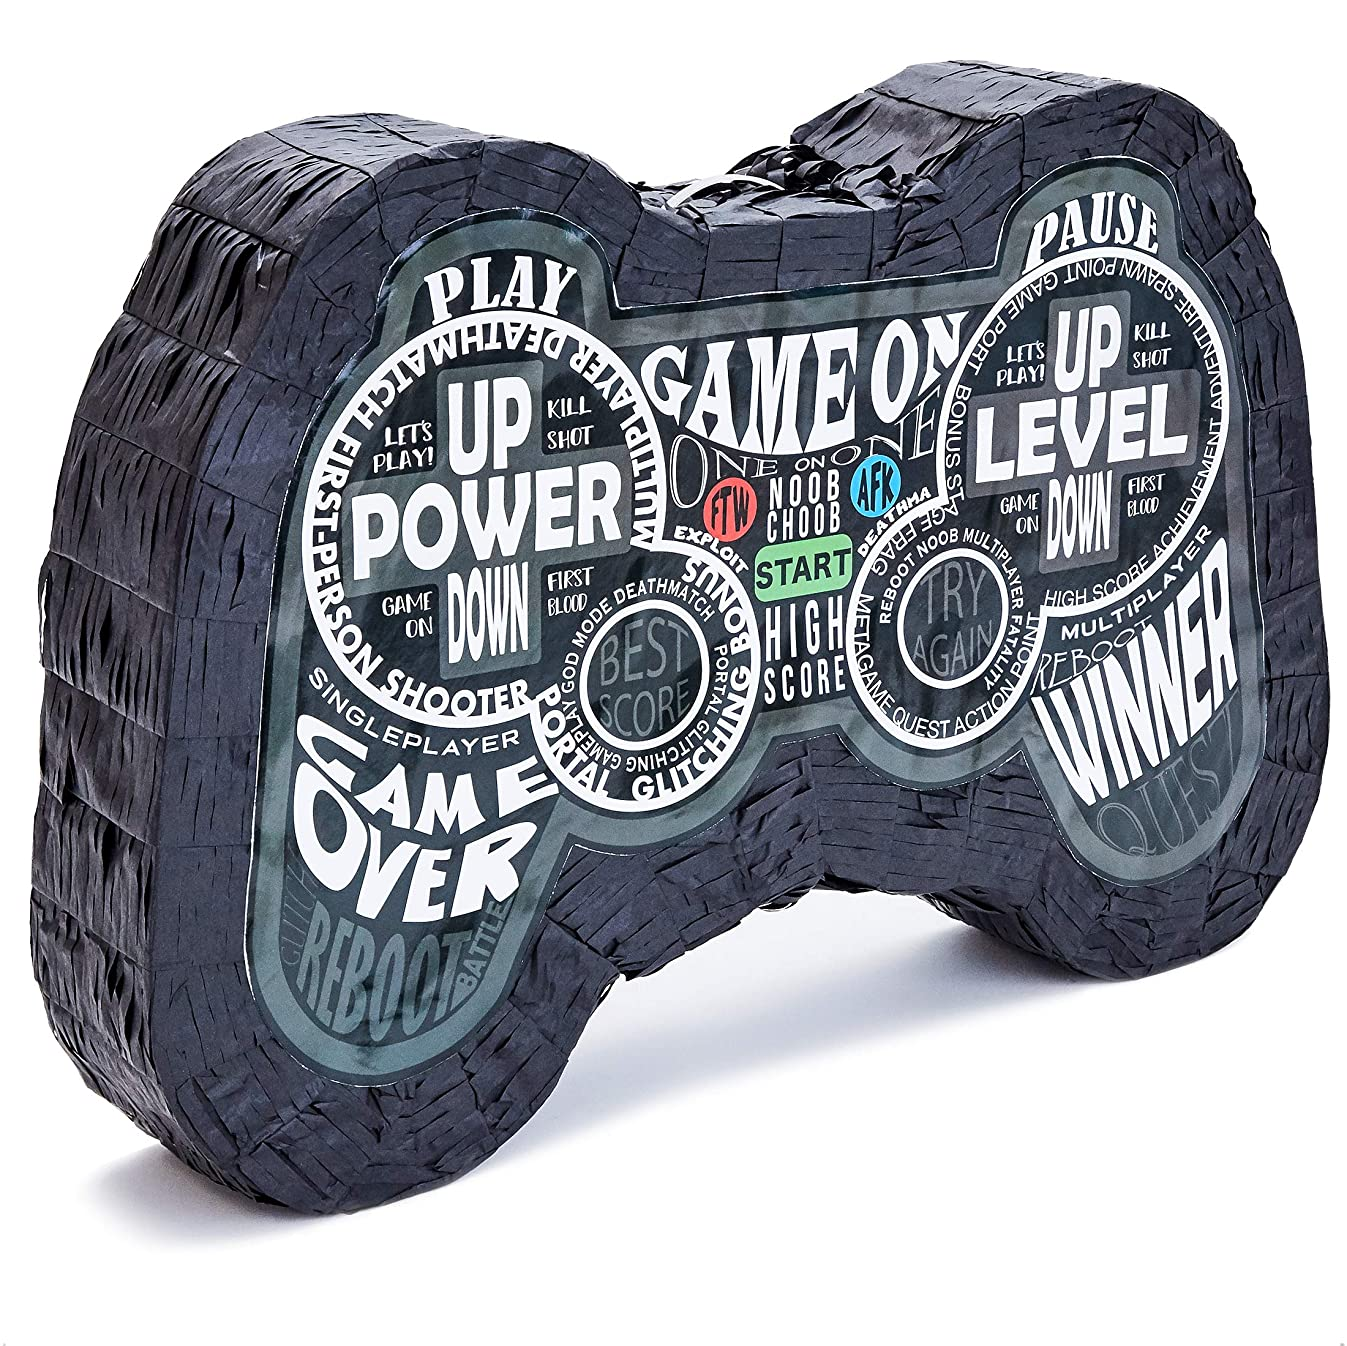 Juvale Video Game Controller Pinata, Birthday Gamer Party Decorations, Size Medium, 16.5 x 11 x 3 Inches